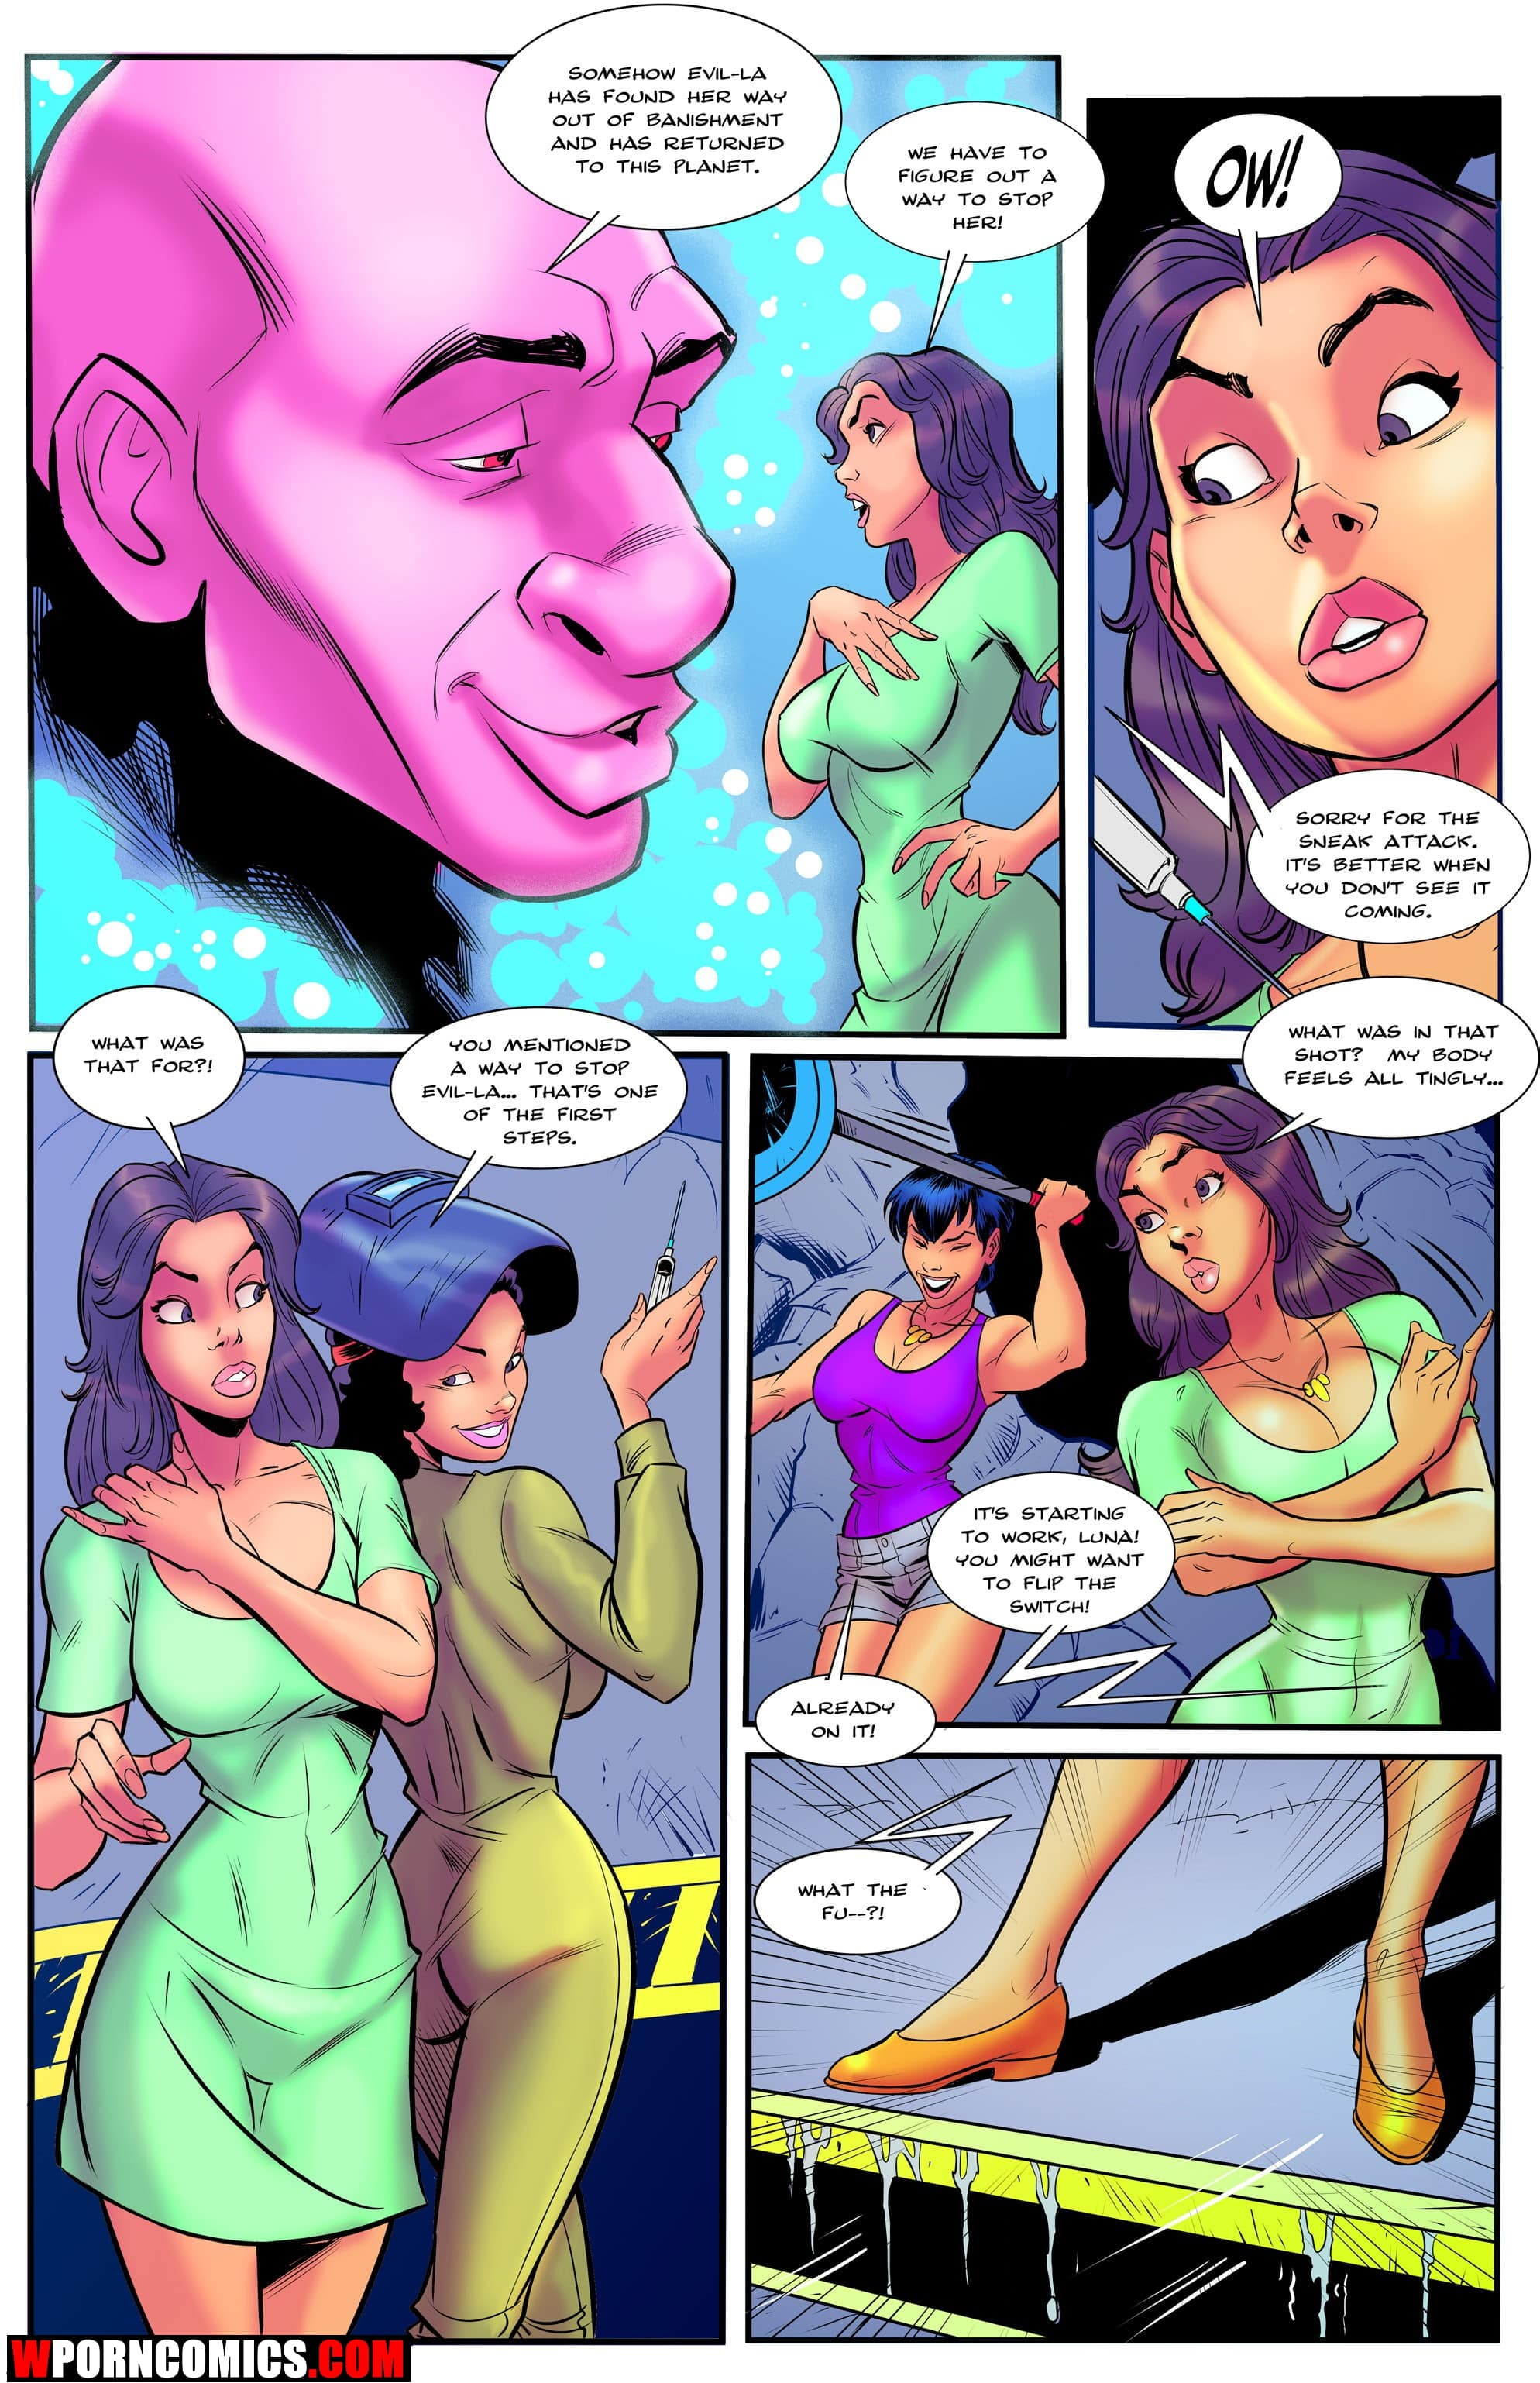 porn-comic-megaforce-2019-11-06/porn-comic-megaforce-2019-11-06-23464.jpg